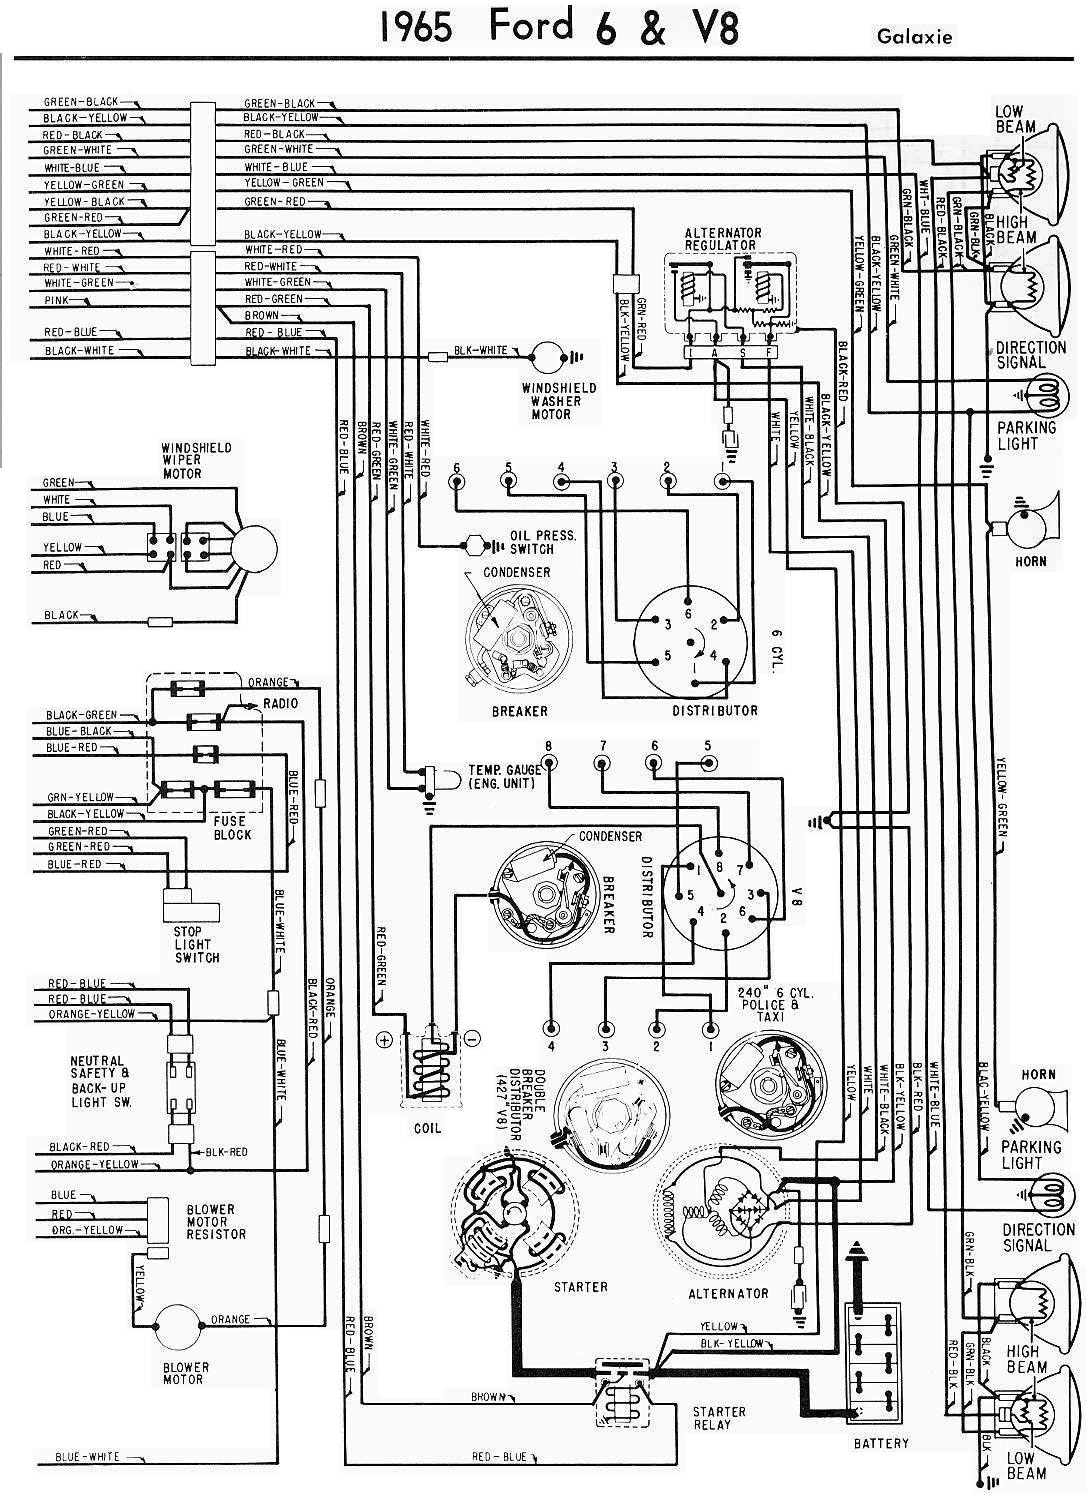 1965 ford fairlane wiring diagram images 1965 ford galaxie plete electrical wiring diagram part 2 all